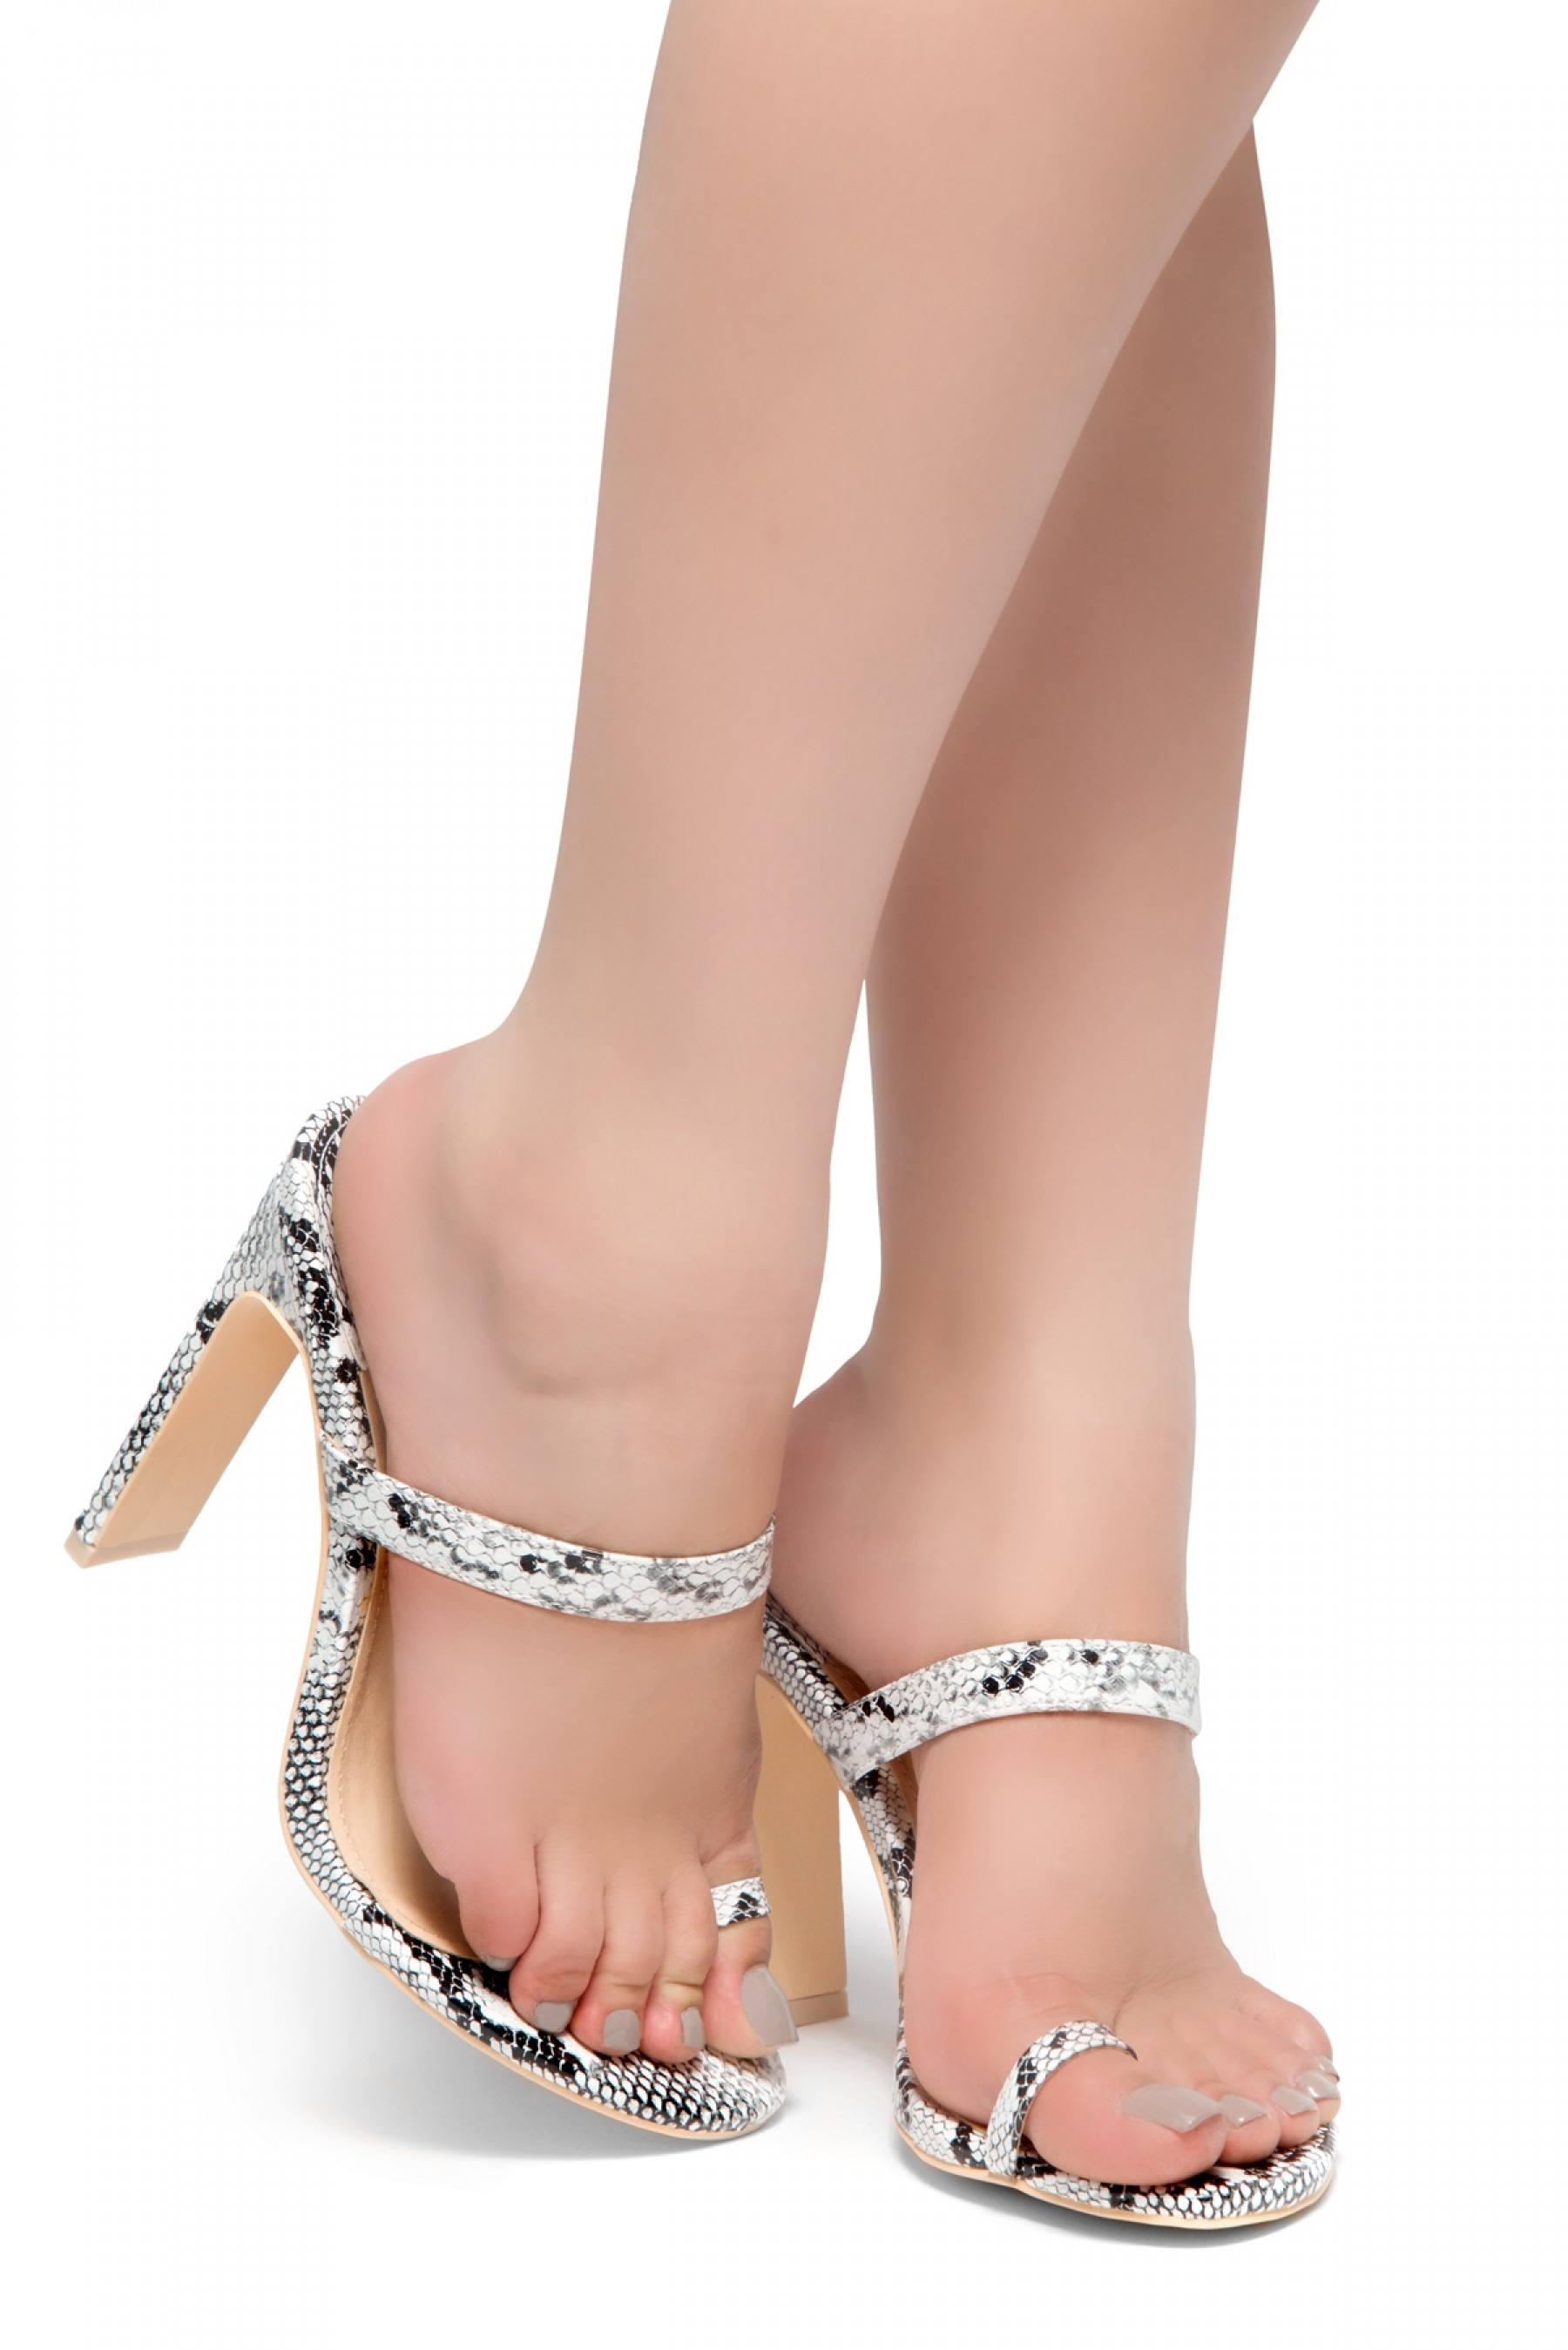 2ce4e53b88a HerStyle Sasseta- Toe Ring Sandal with simple single vamp Strap ...